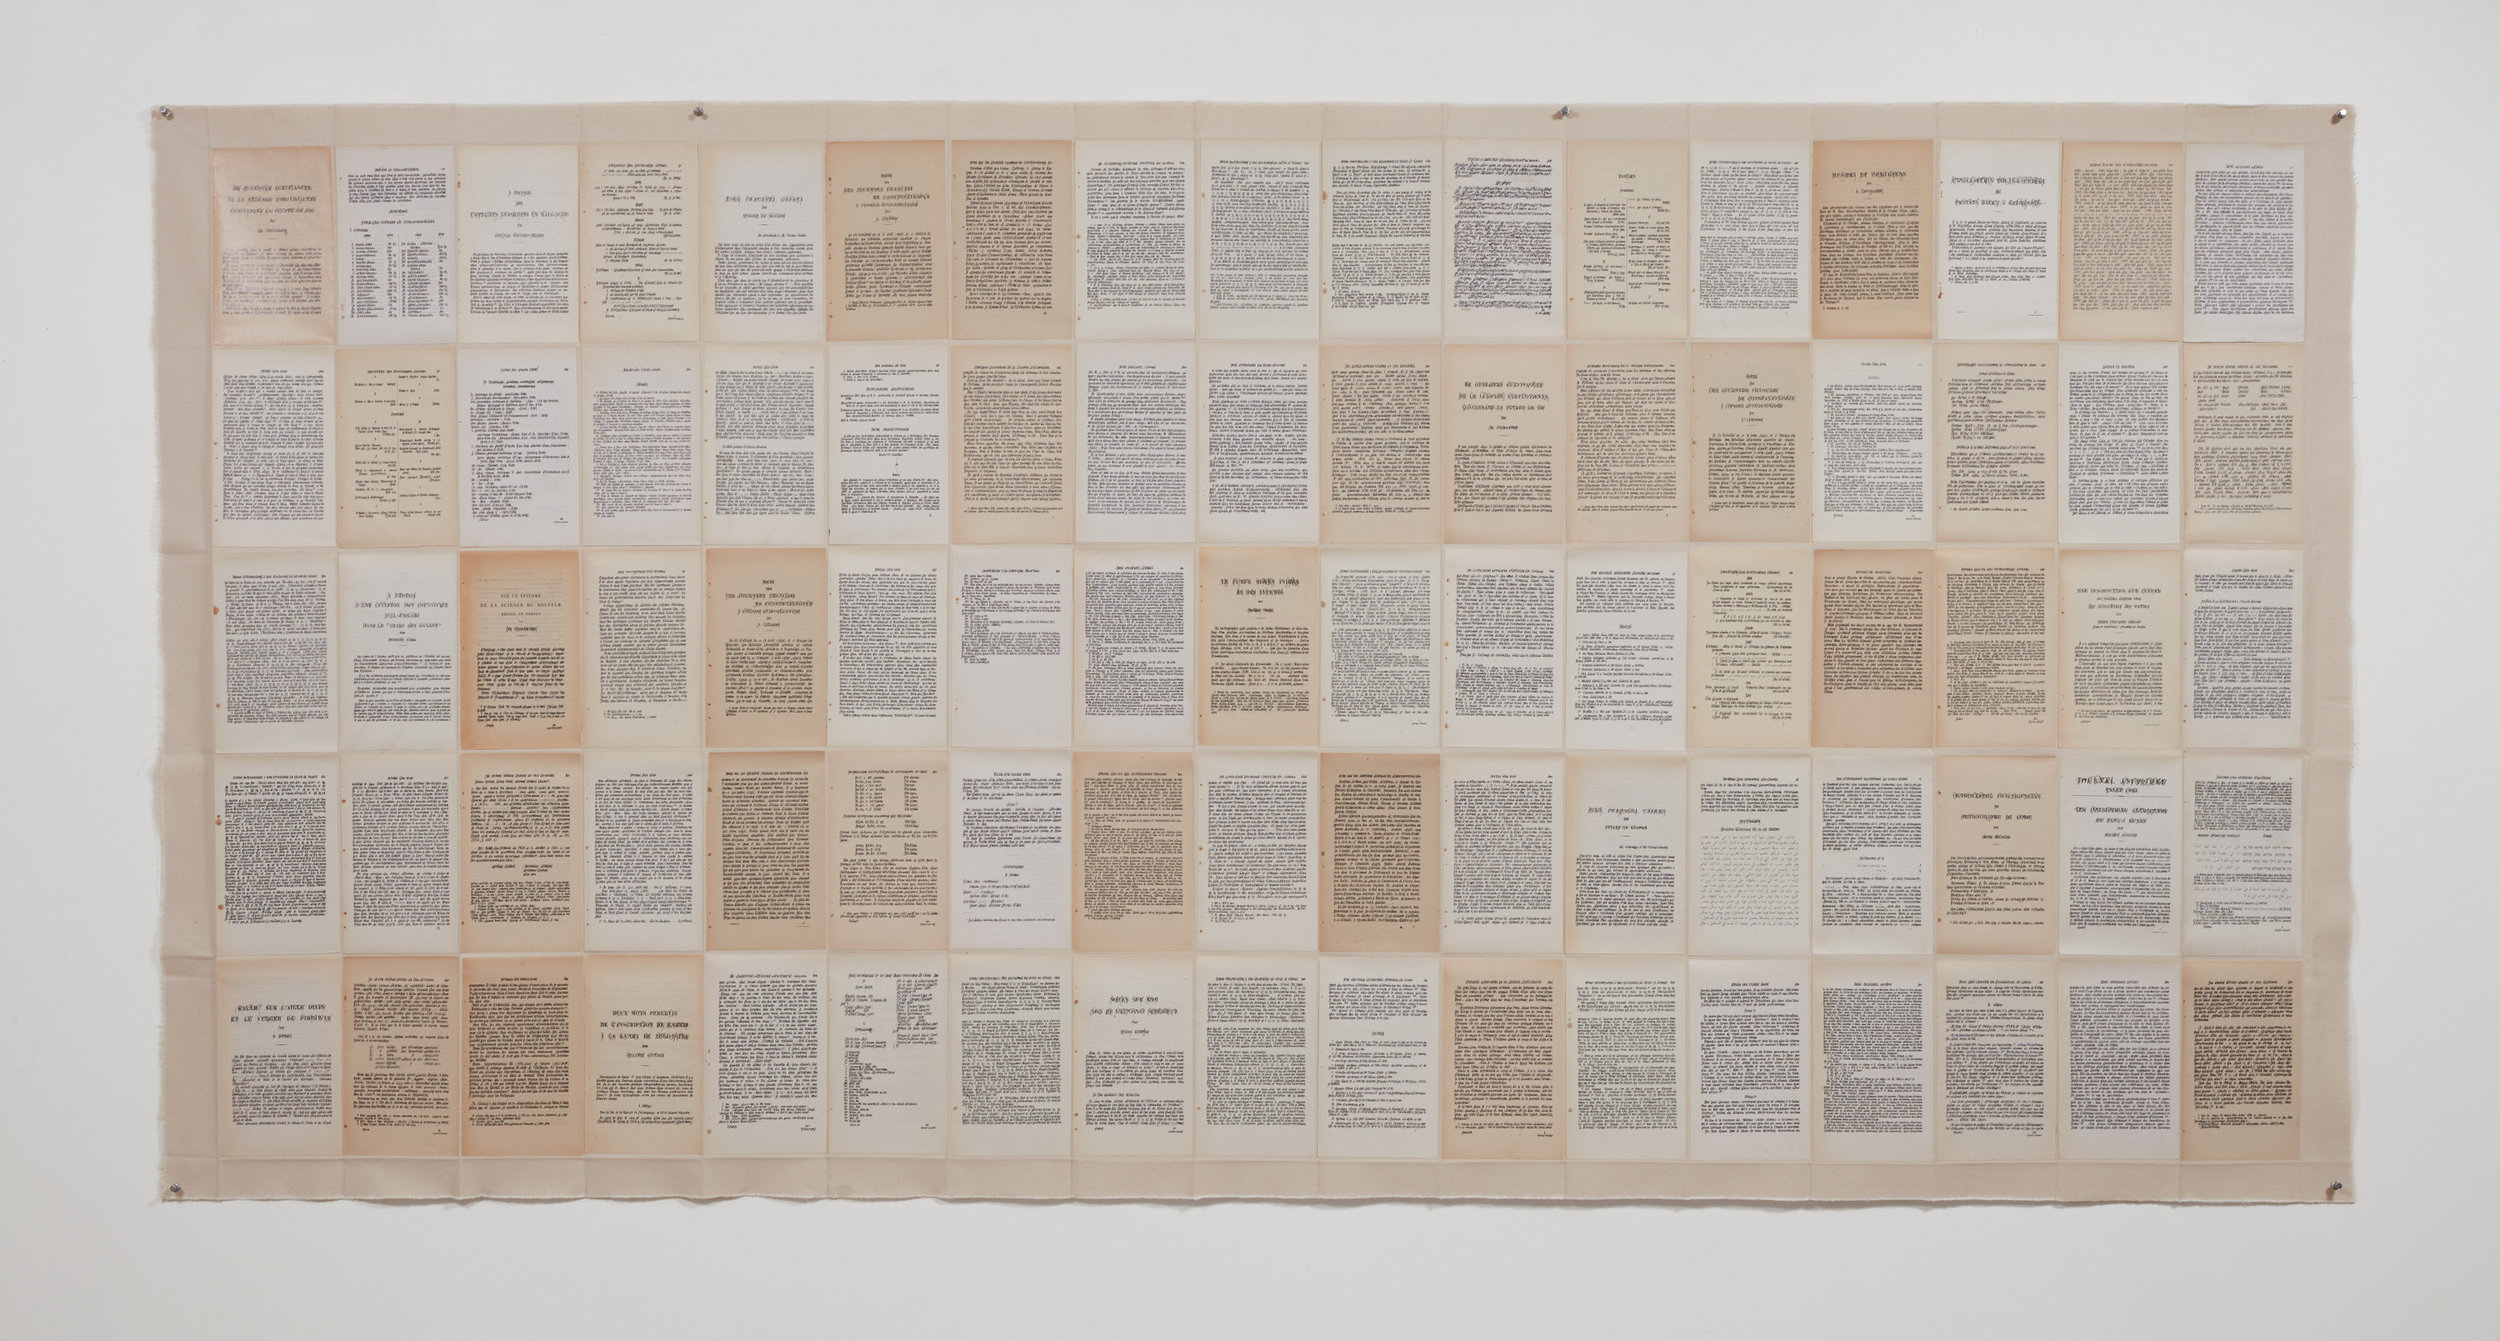 Dinah Diwan  Overwriting 3 , 2017 85 pages of paper and ink on canvas 119.4 x 241.3 cm 47 x 95 in Photo: © Dinah Diwan Courtesy of the Artist